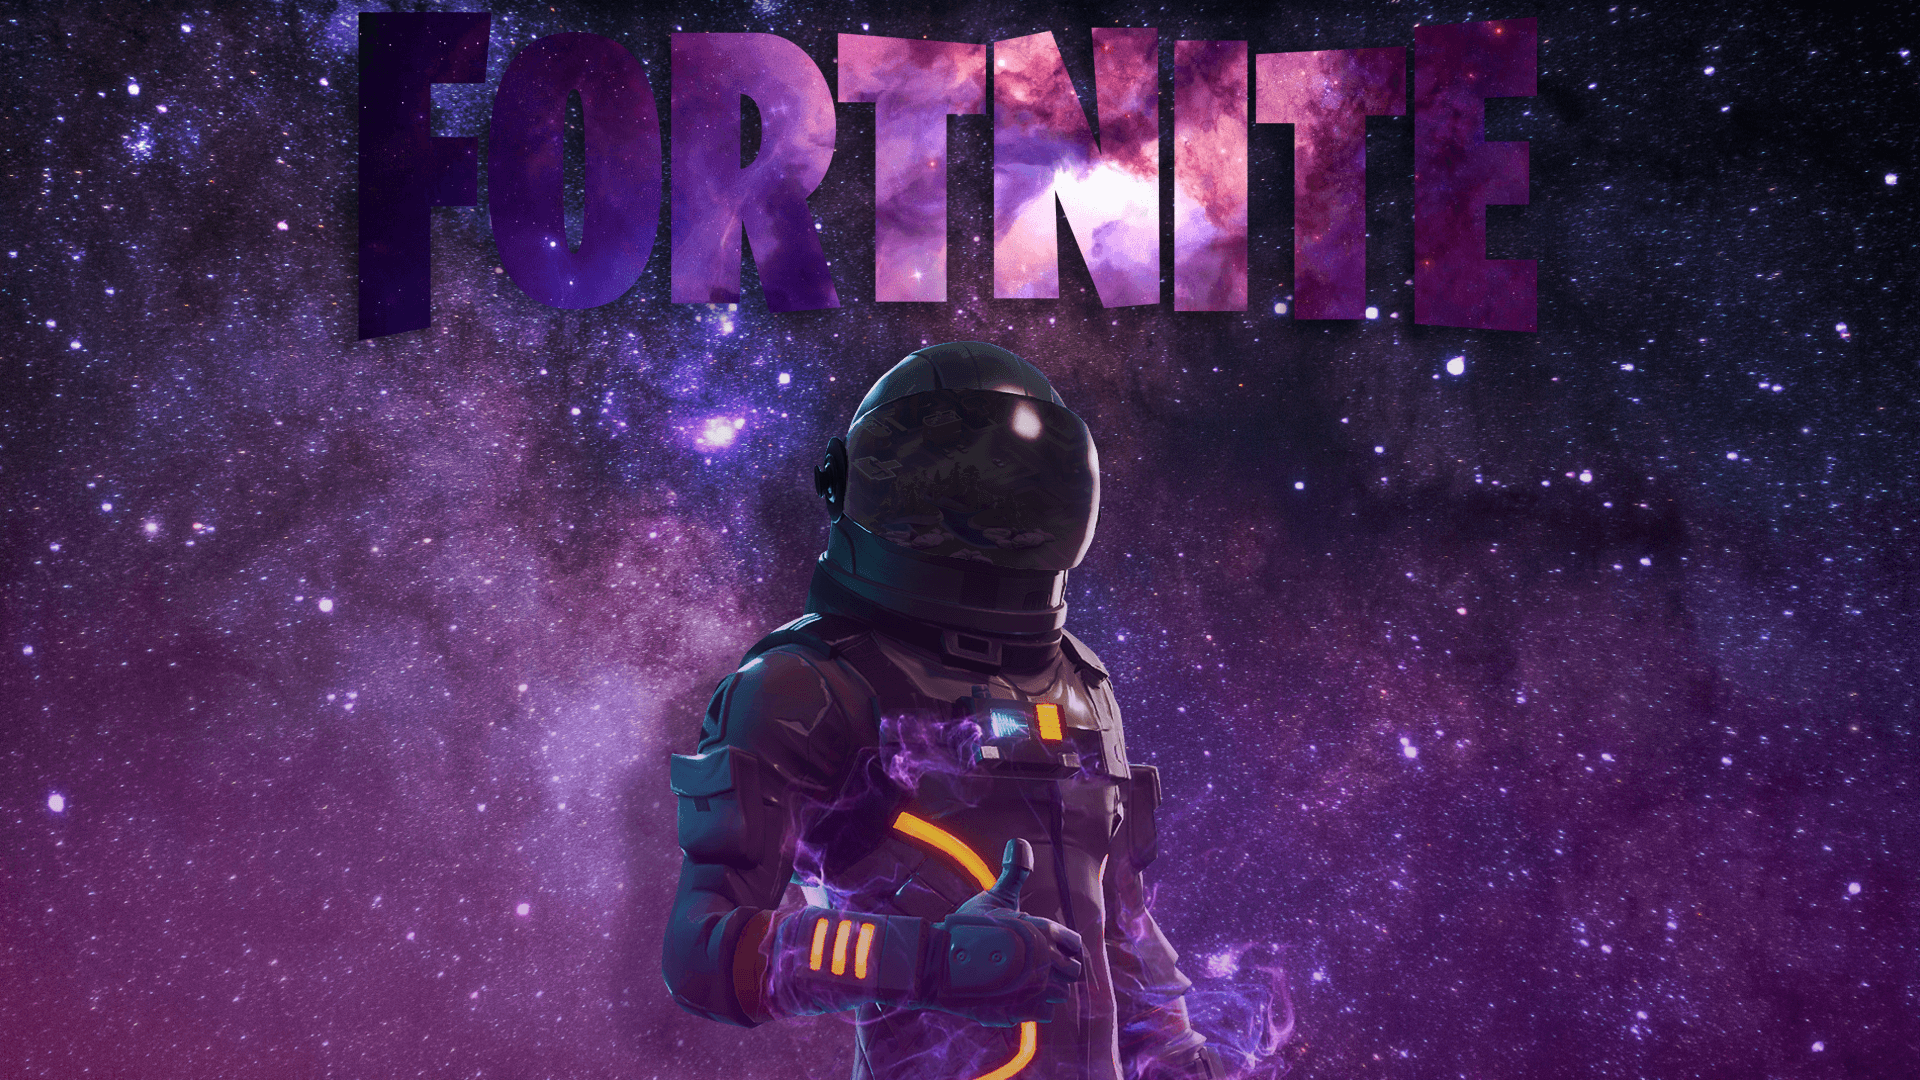 Fortnite Wallpapers 1920x1080